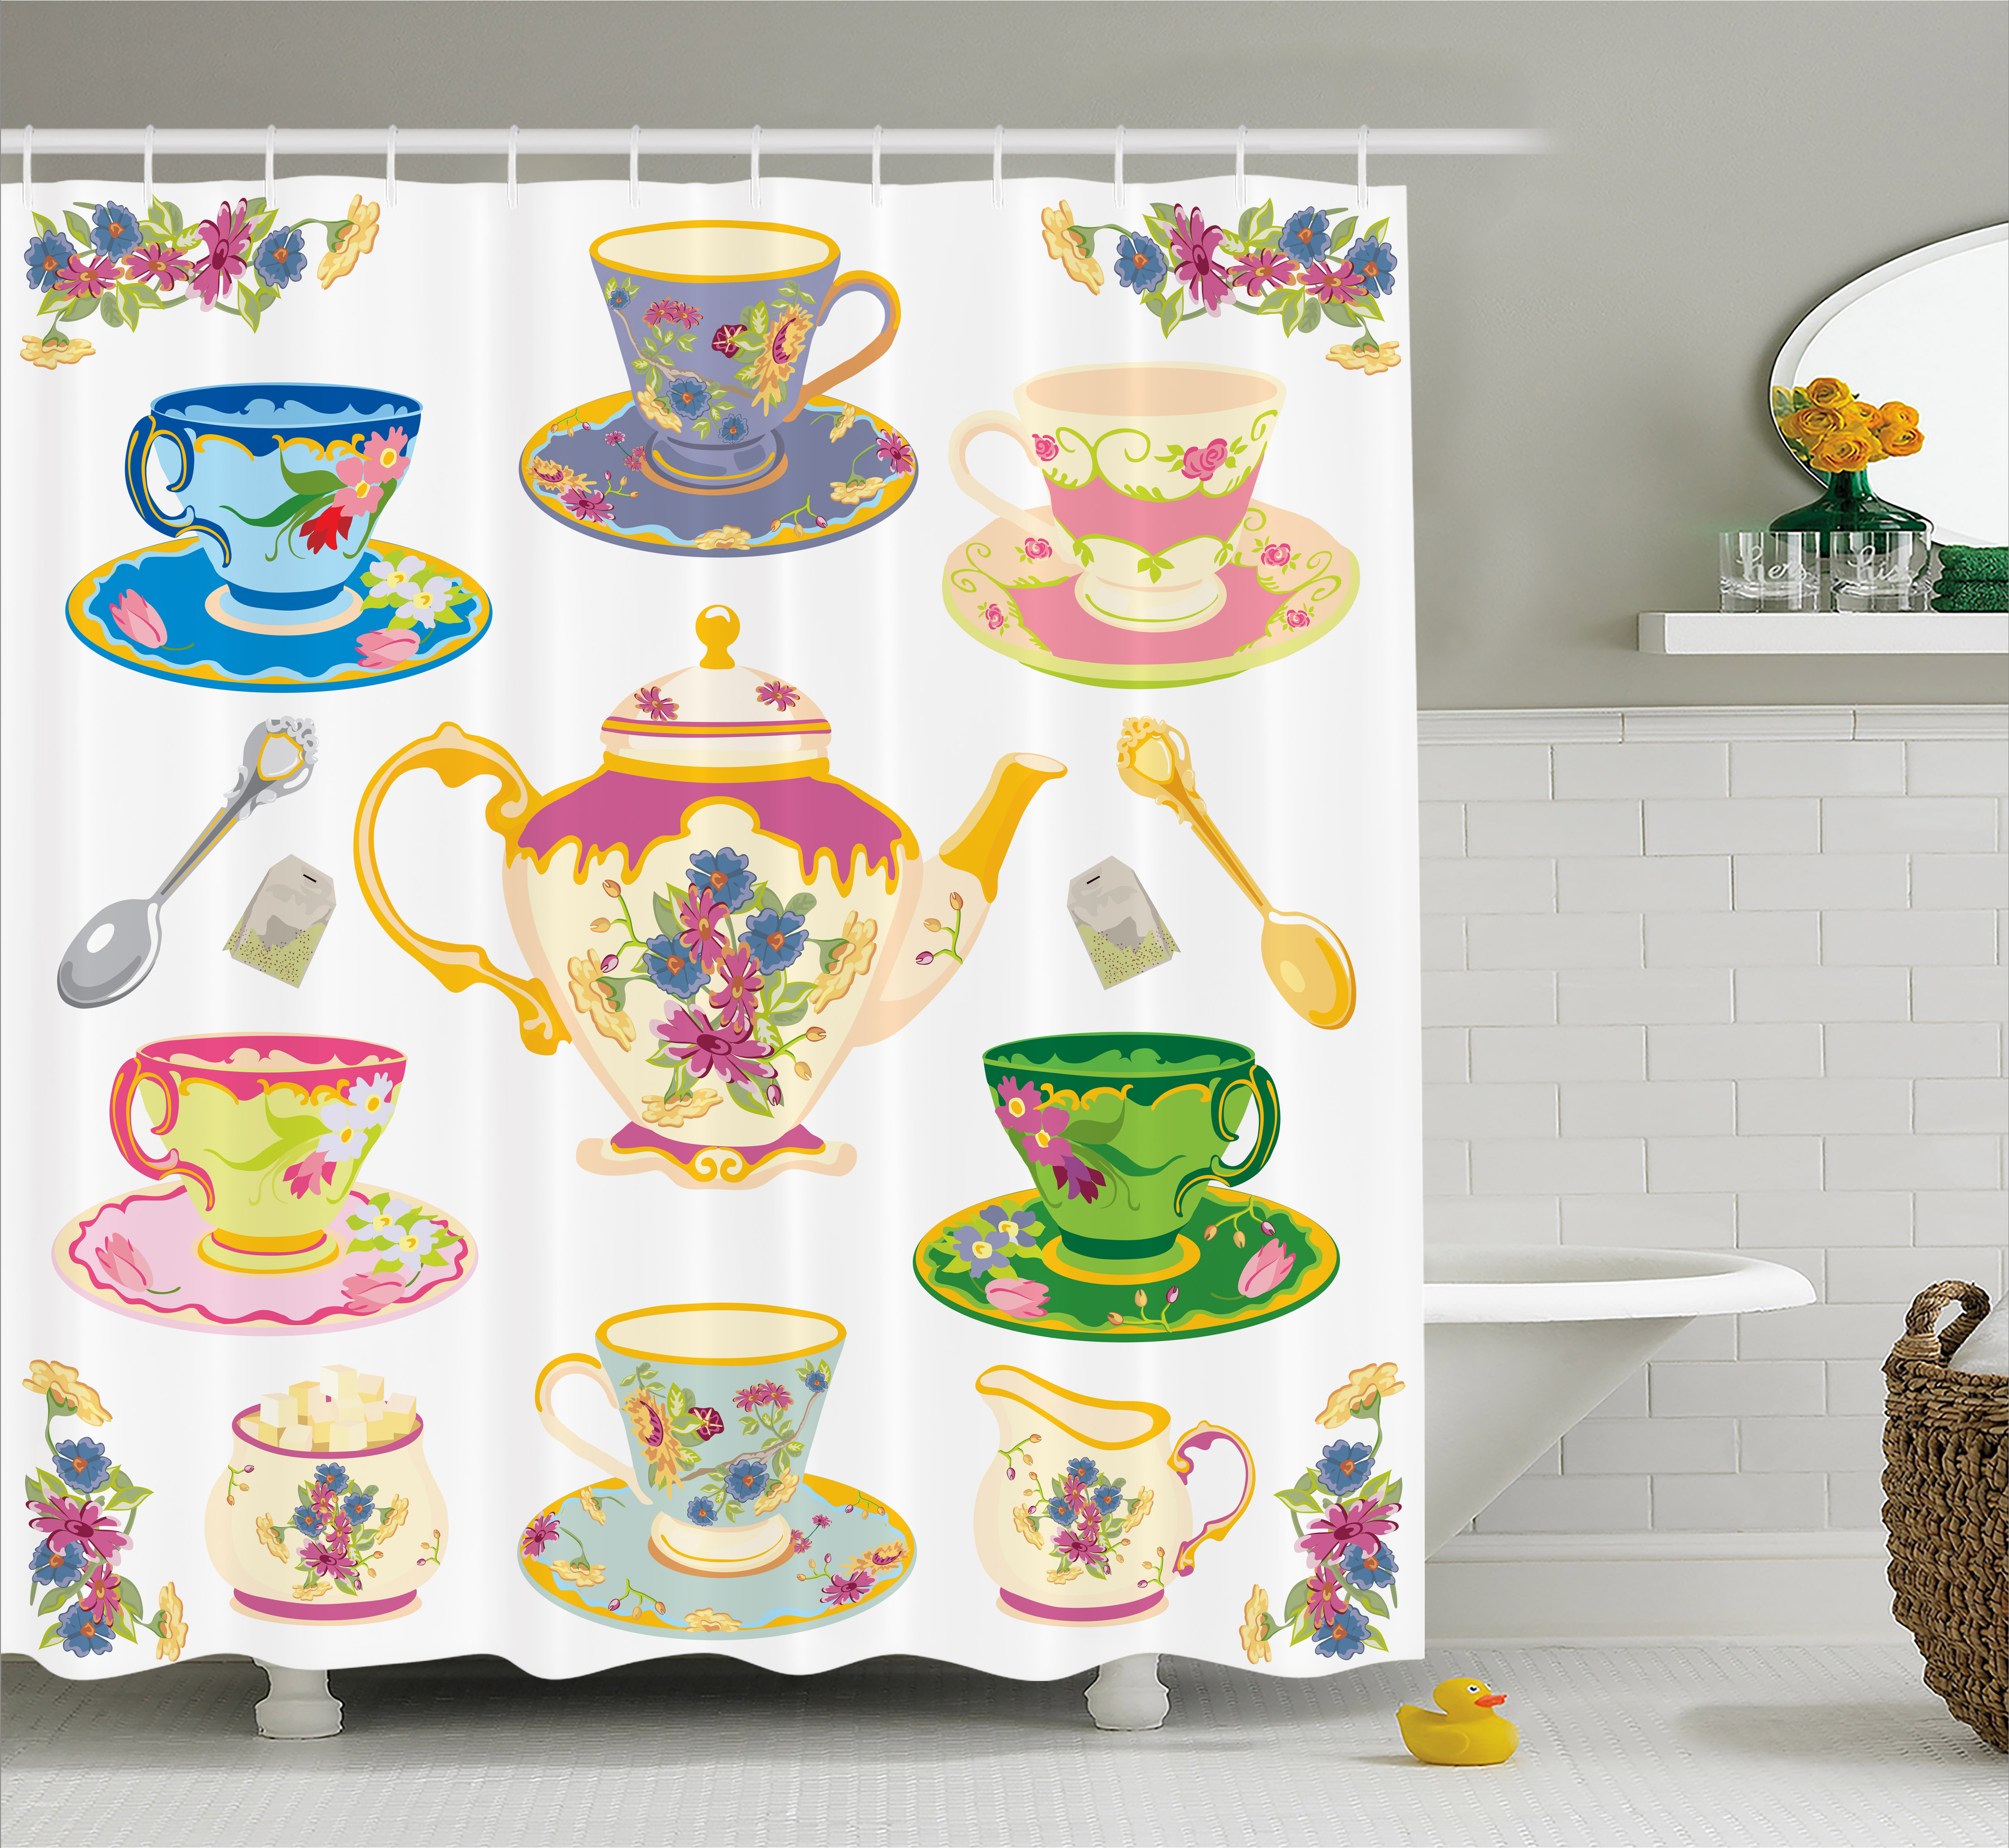 Tea Party Shower Curtain, Selection of Vivid Colored Teac...